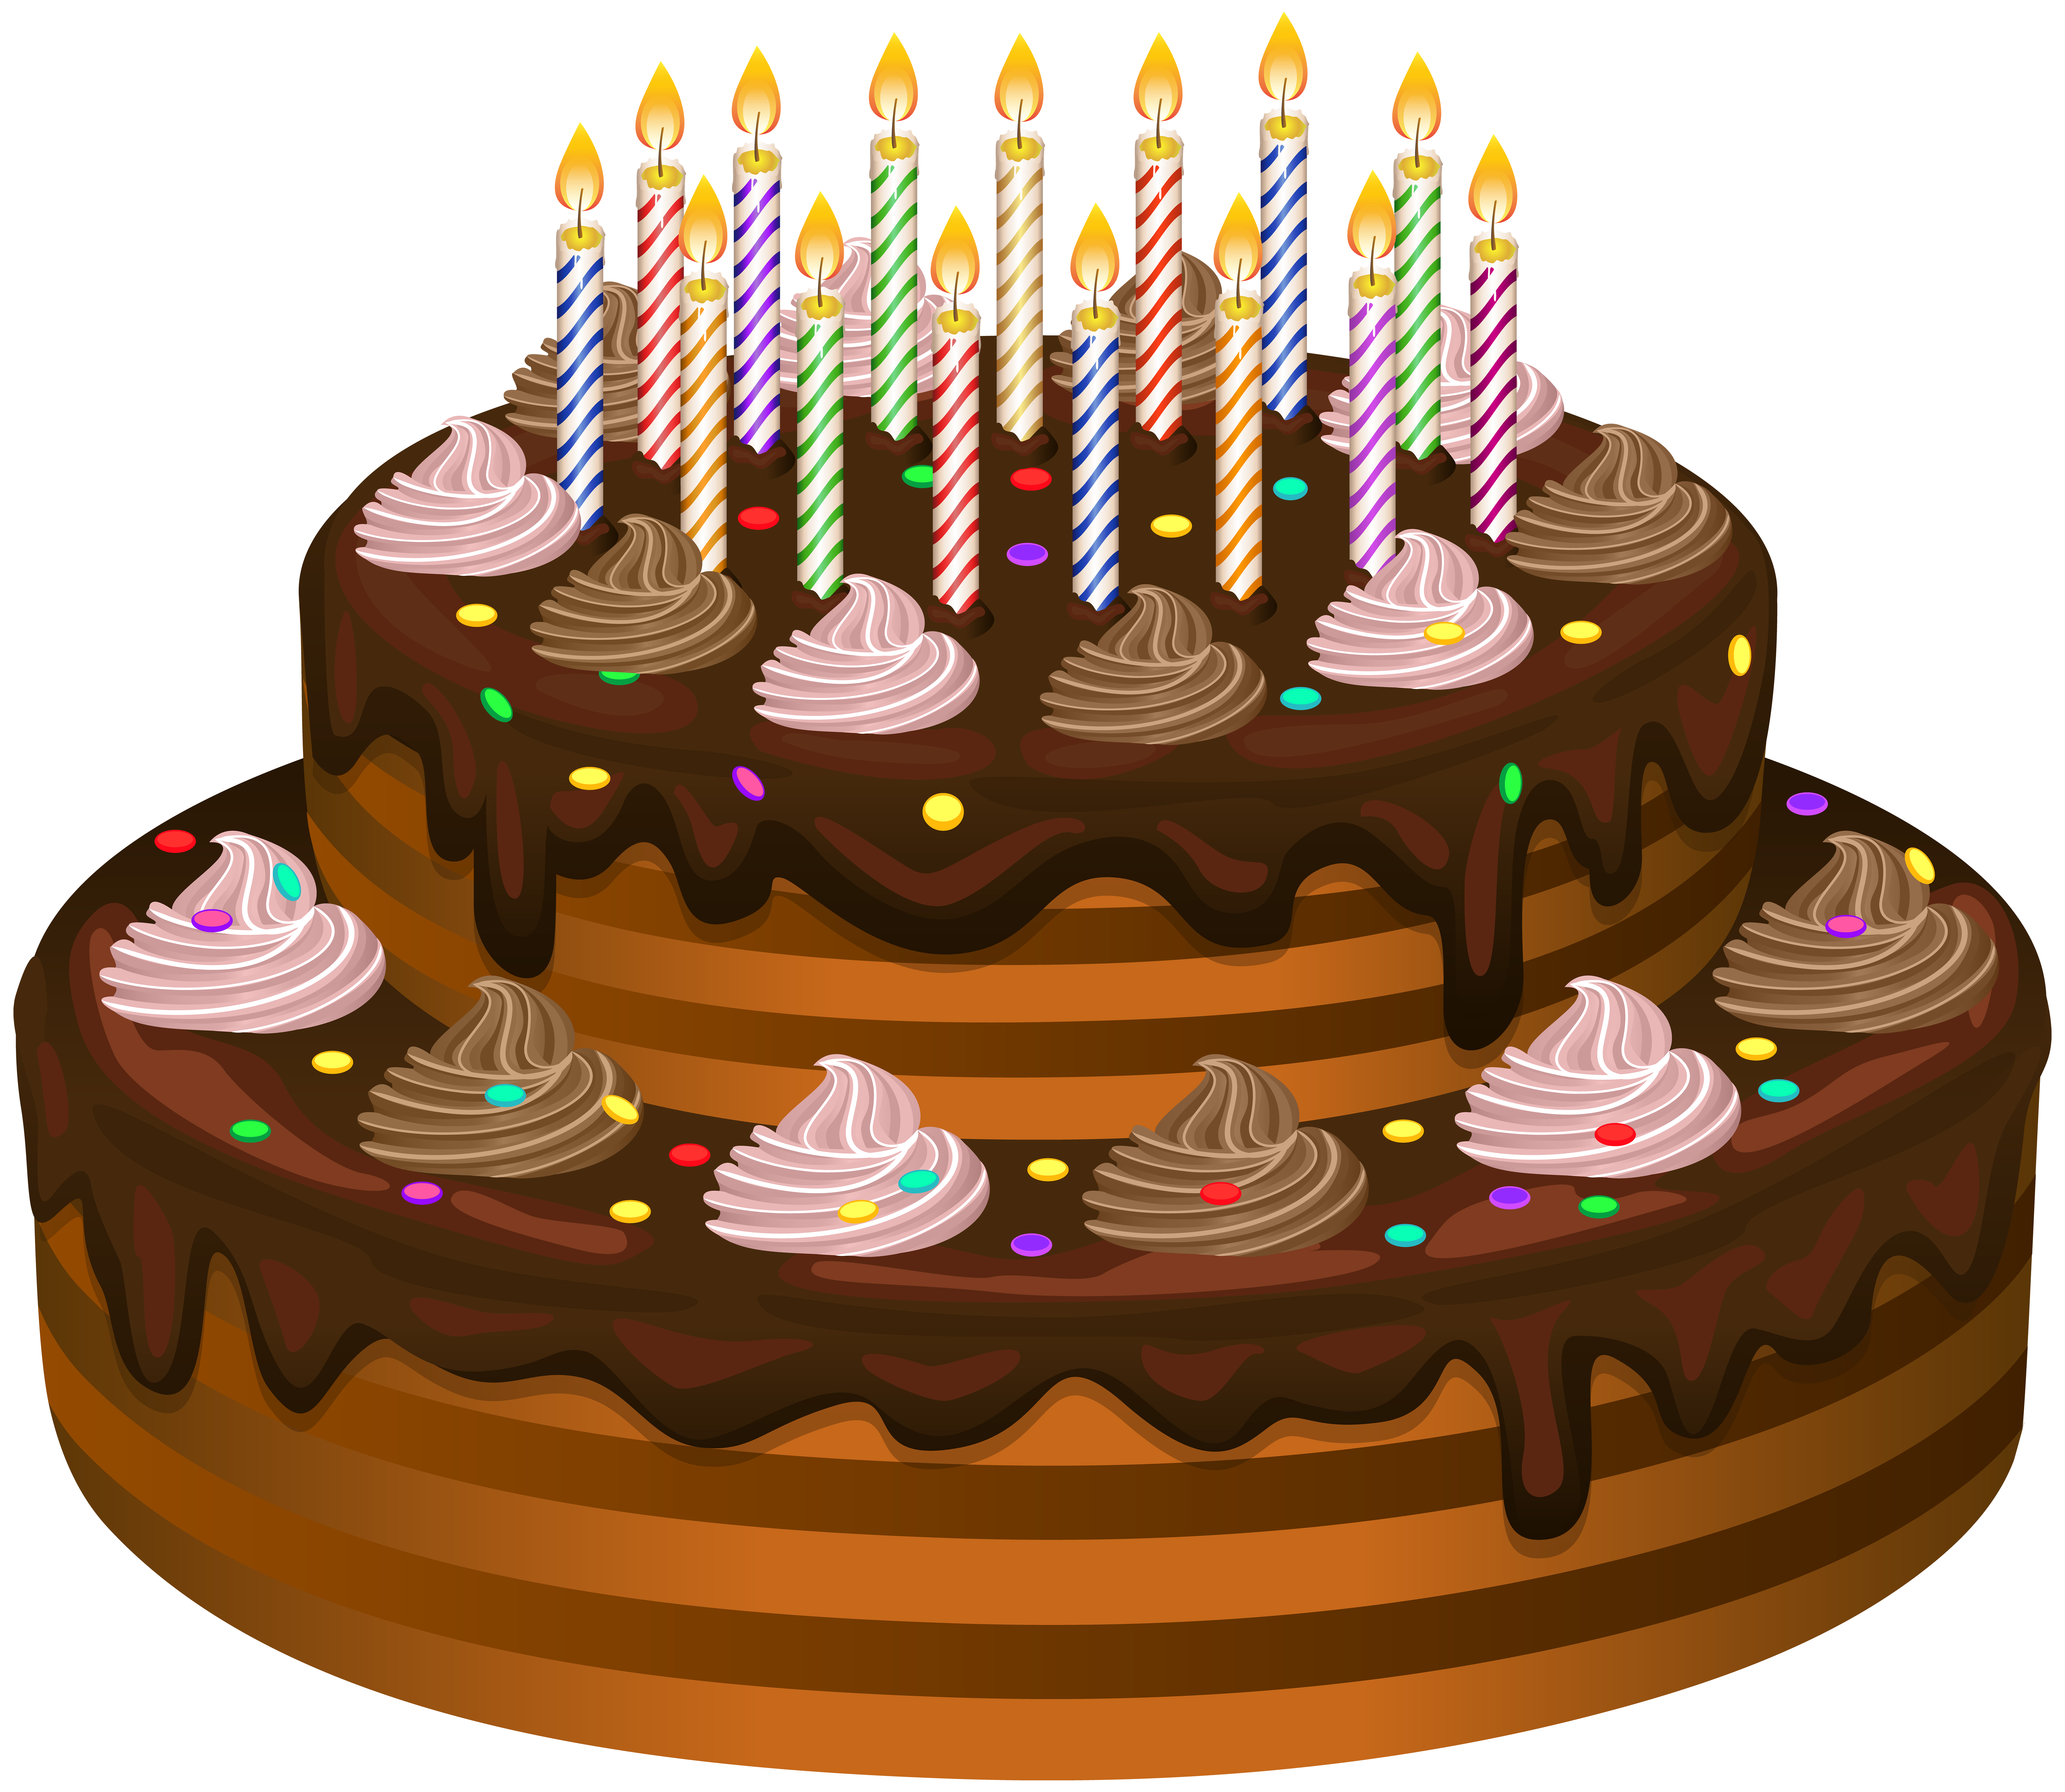 Free clipart images birthday cake picture freeuse download Birthday Cake Transparent Clip Art   Gallery Yopriceville - High ... picture freeuse download